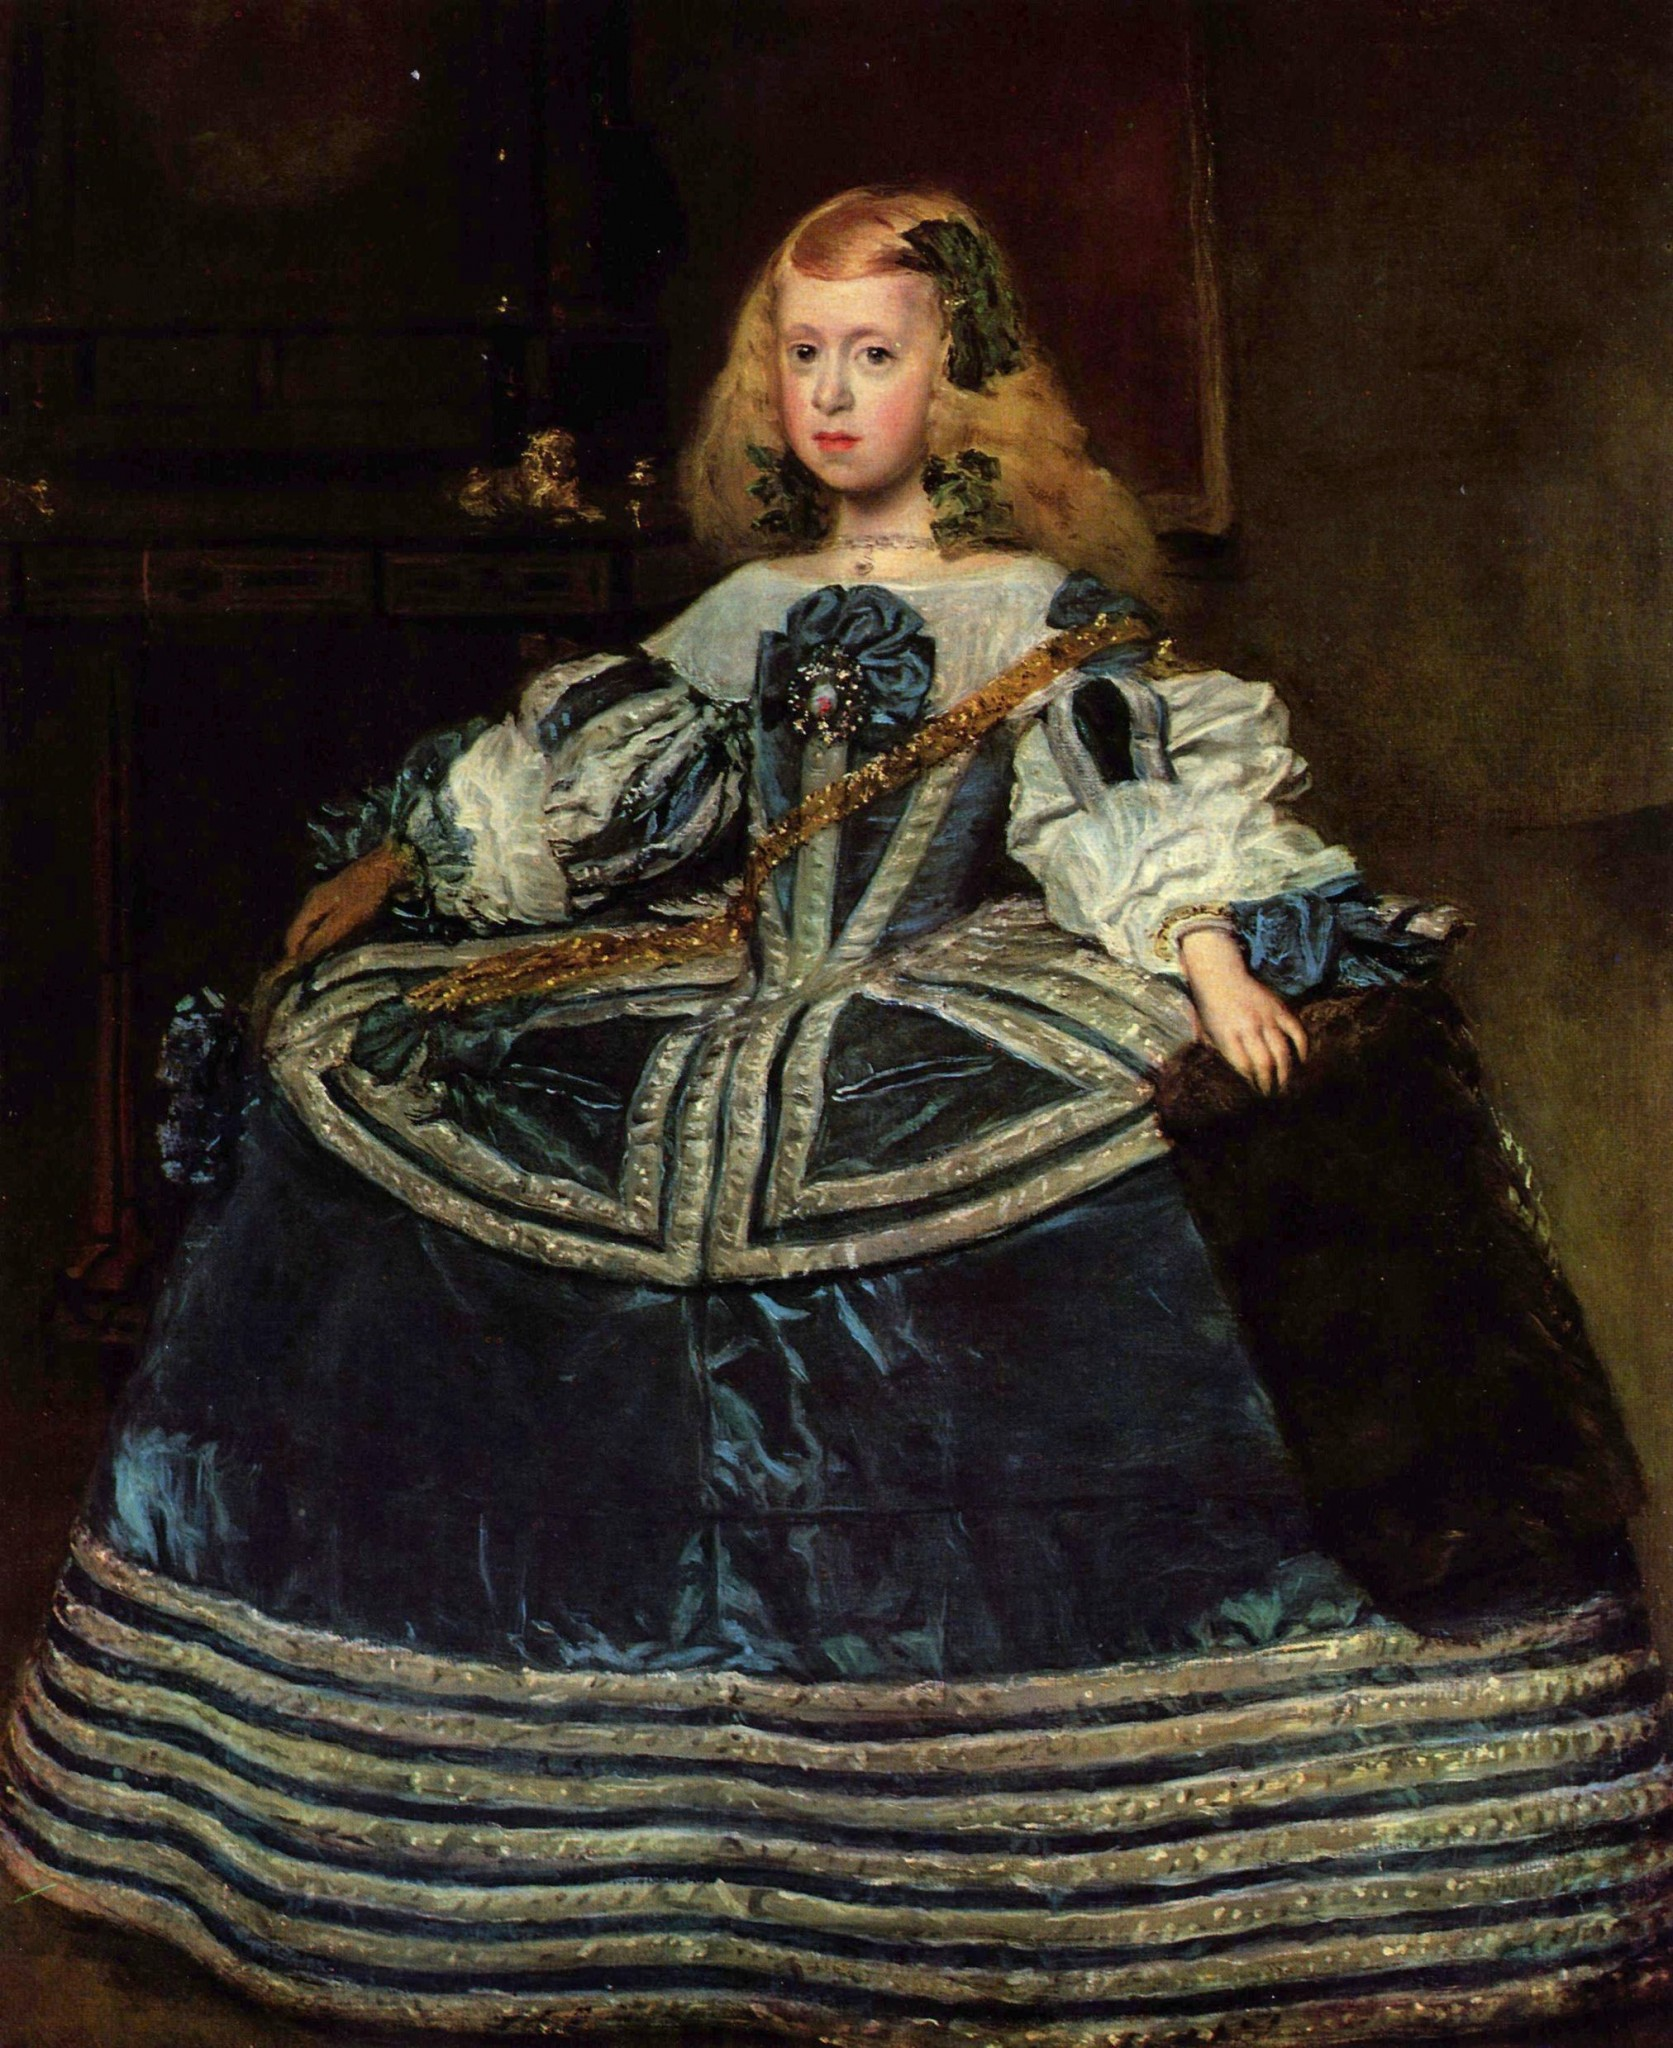 Diego Velázquez (Portrait of the Infanta Margarita. 1660)